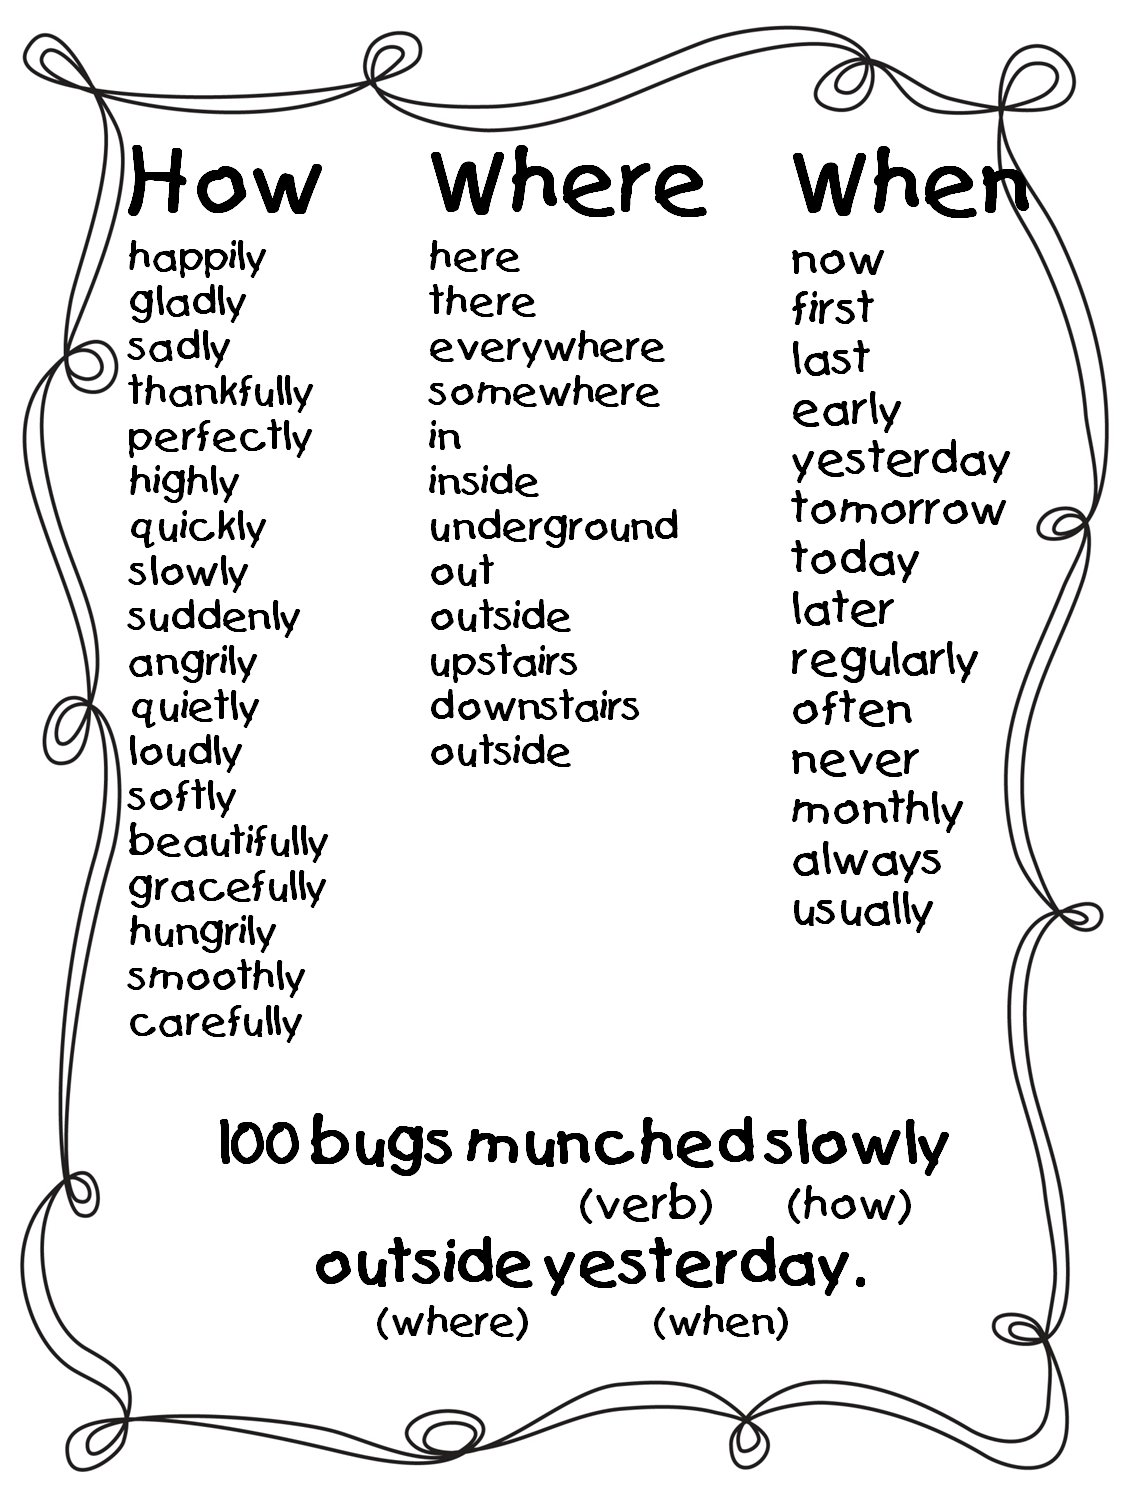 Worksheet Examples Of Adverbs Ks2 worksheet examples of adverbs ks2 mikyu free 1000 images about on pinterest